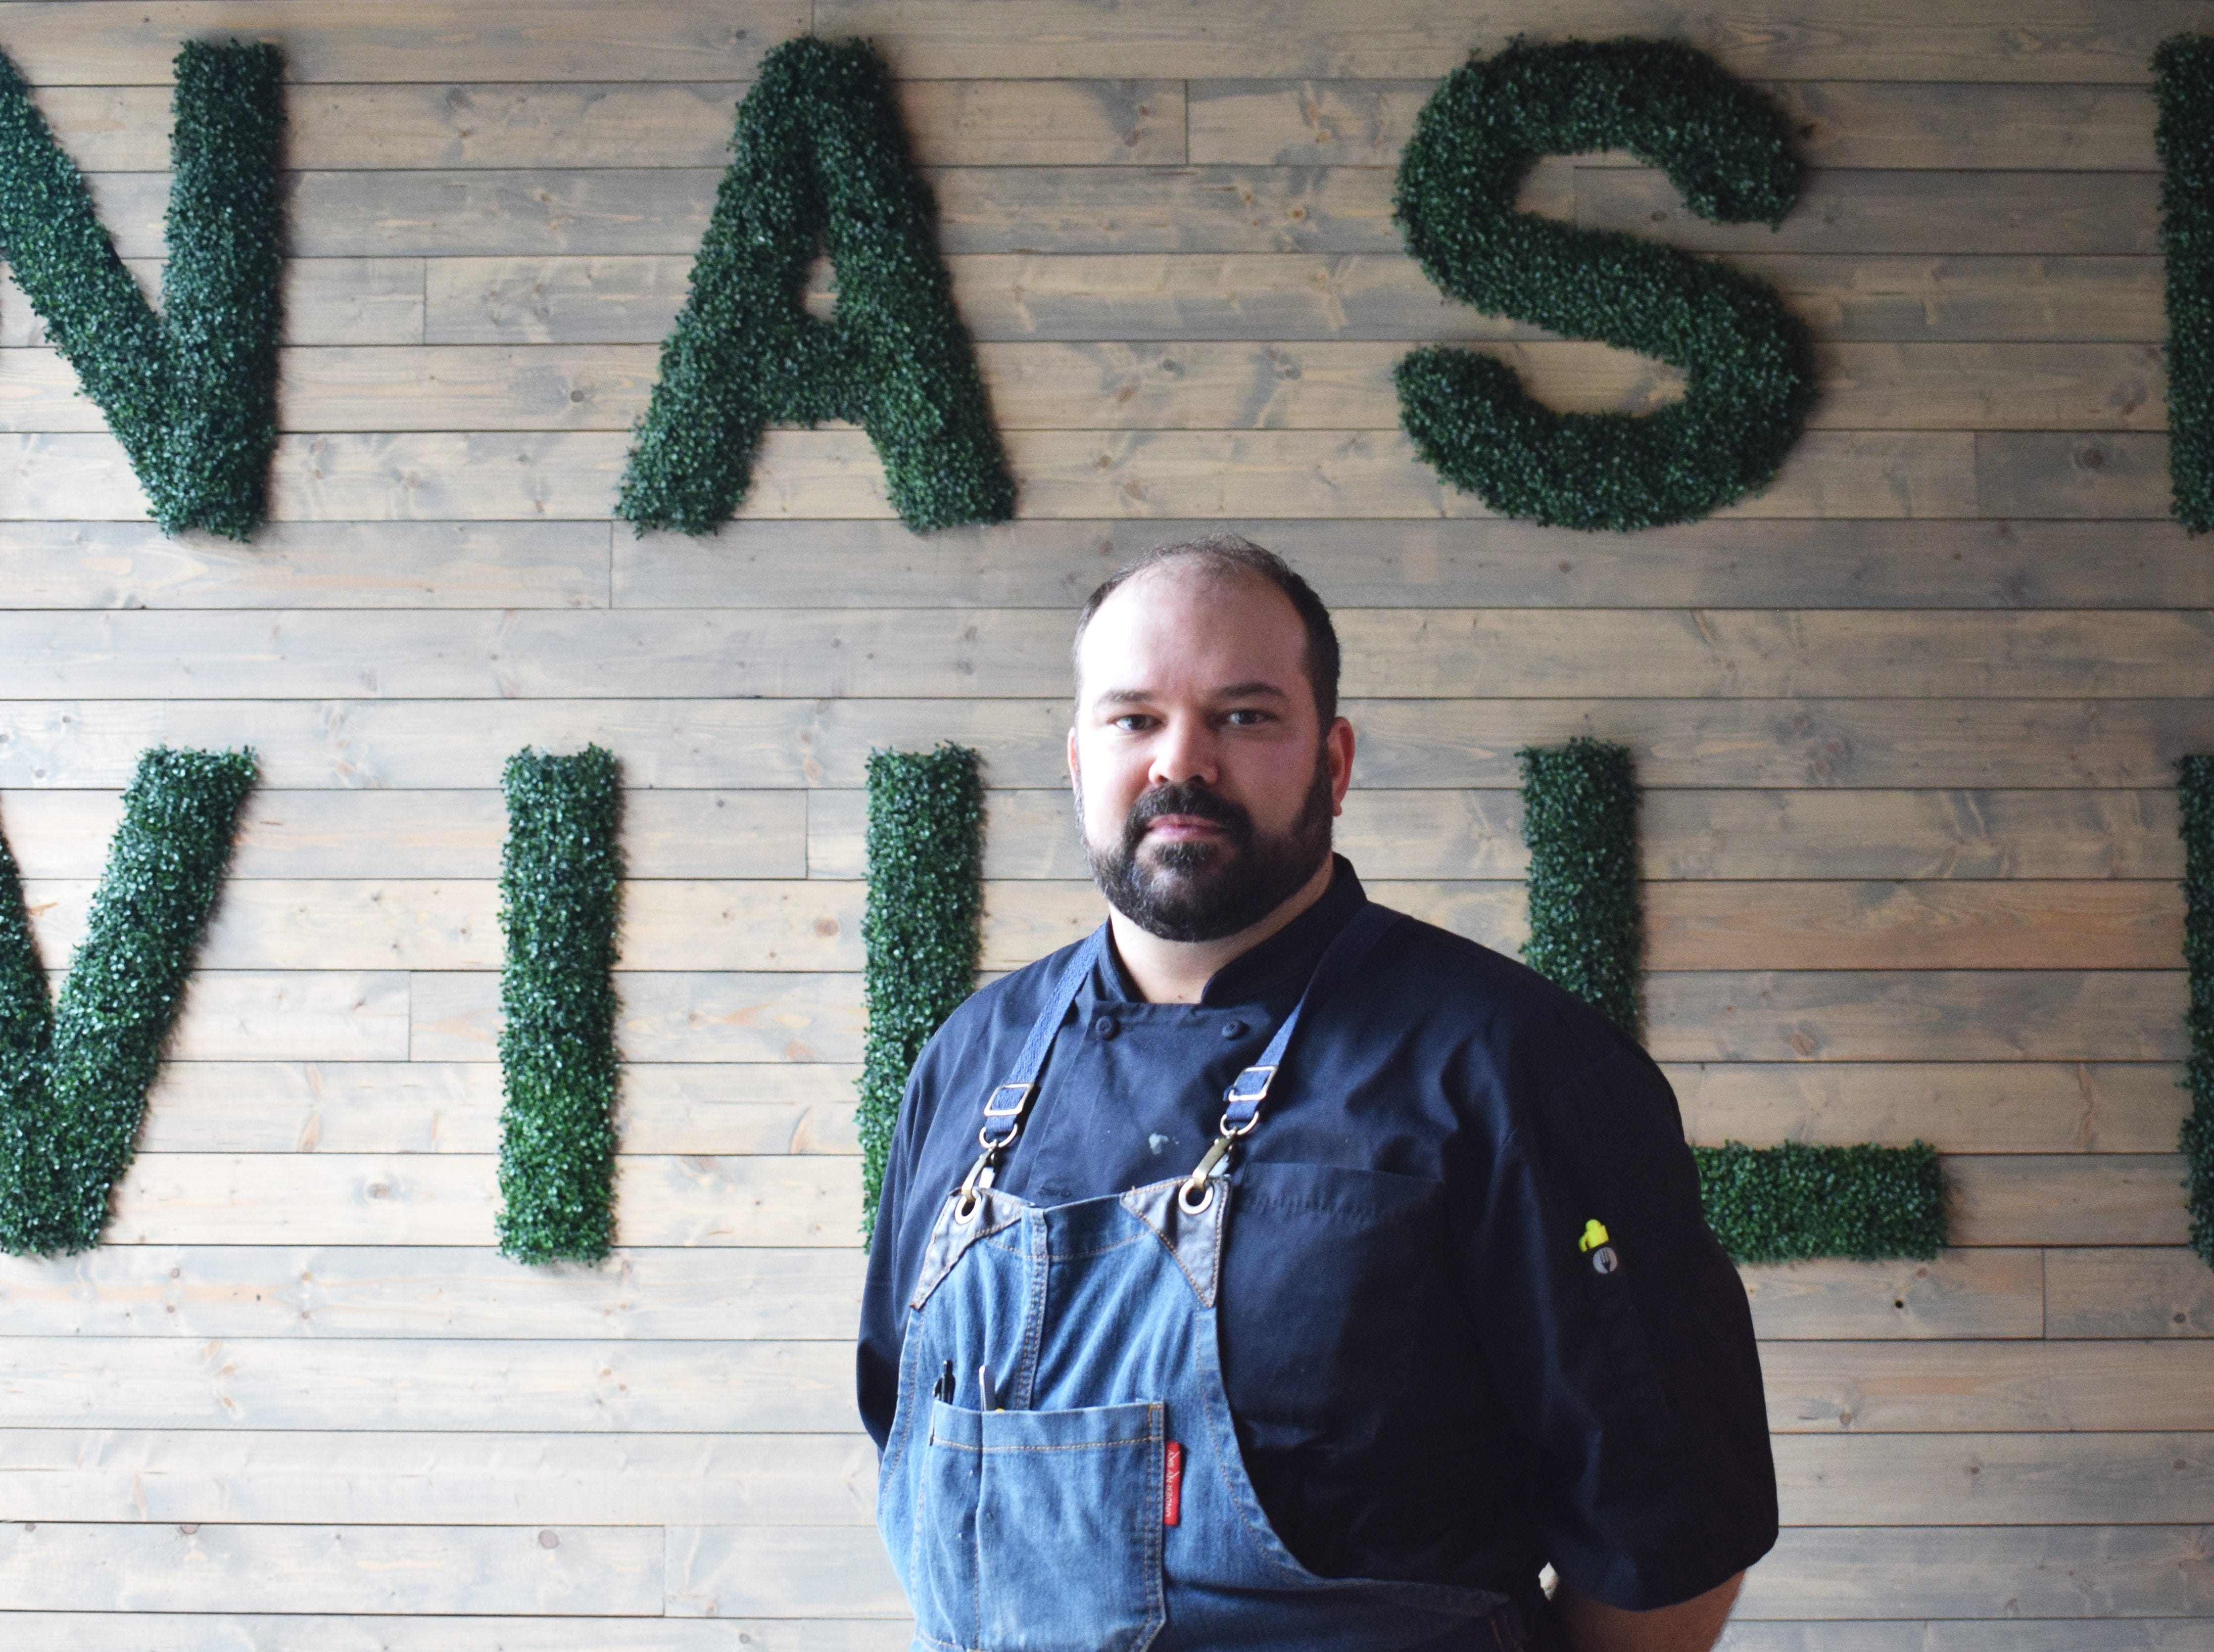 Joey Ray will serve as executive chef at upscale sports bar The Ainsworth in Nashville.